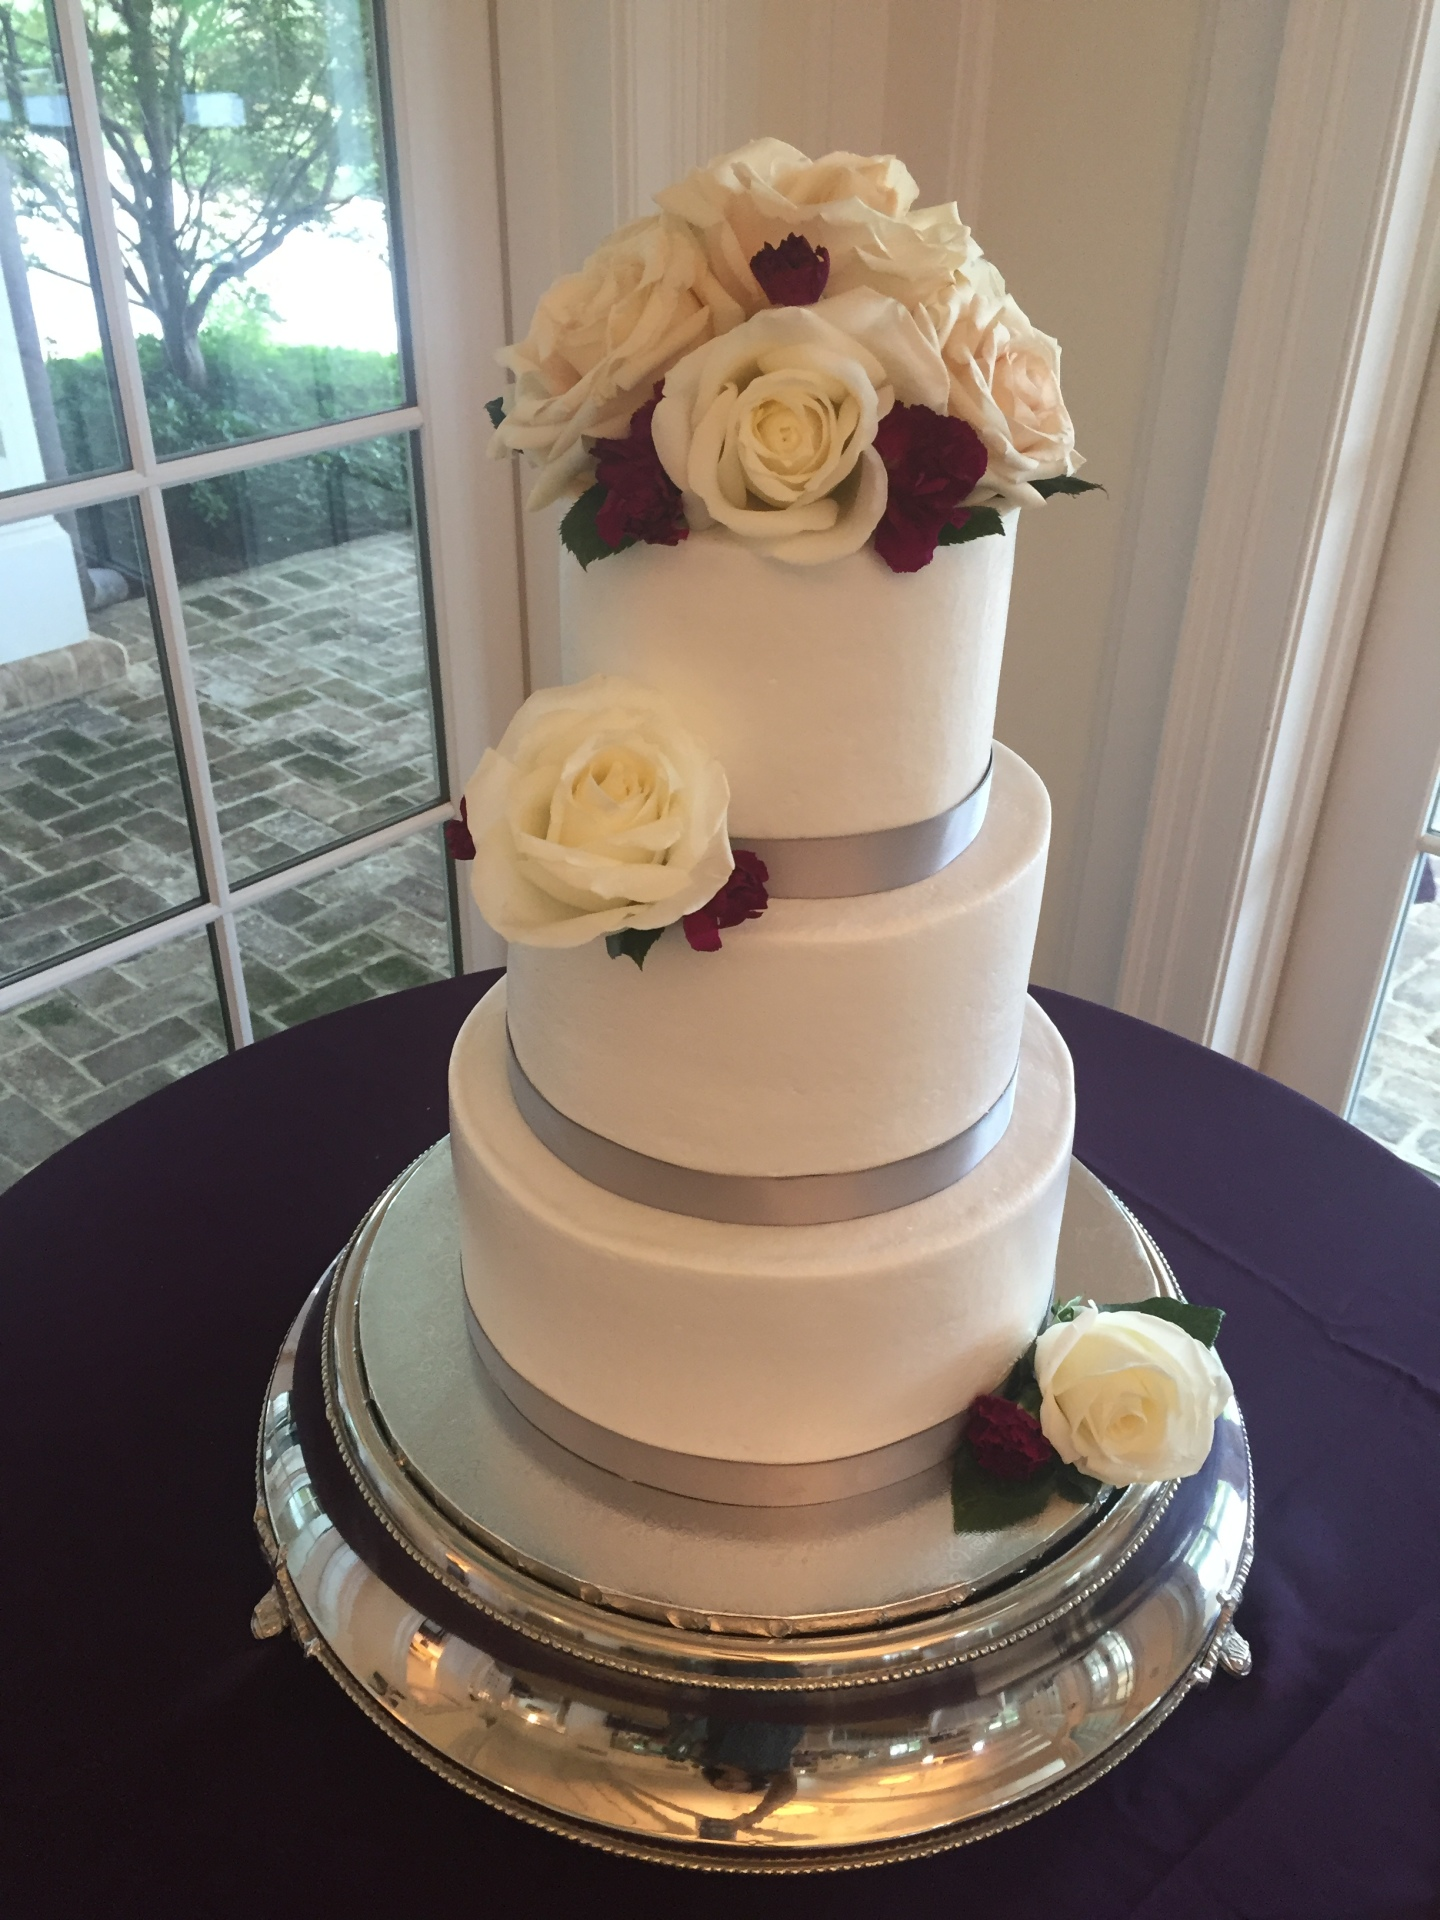 Simple buttercream and fresh flowers